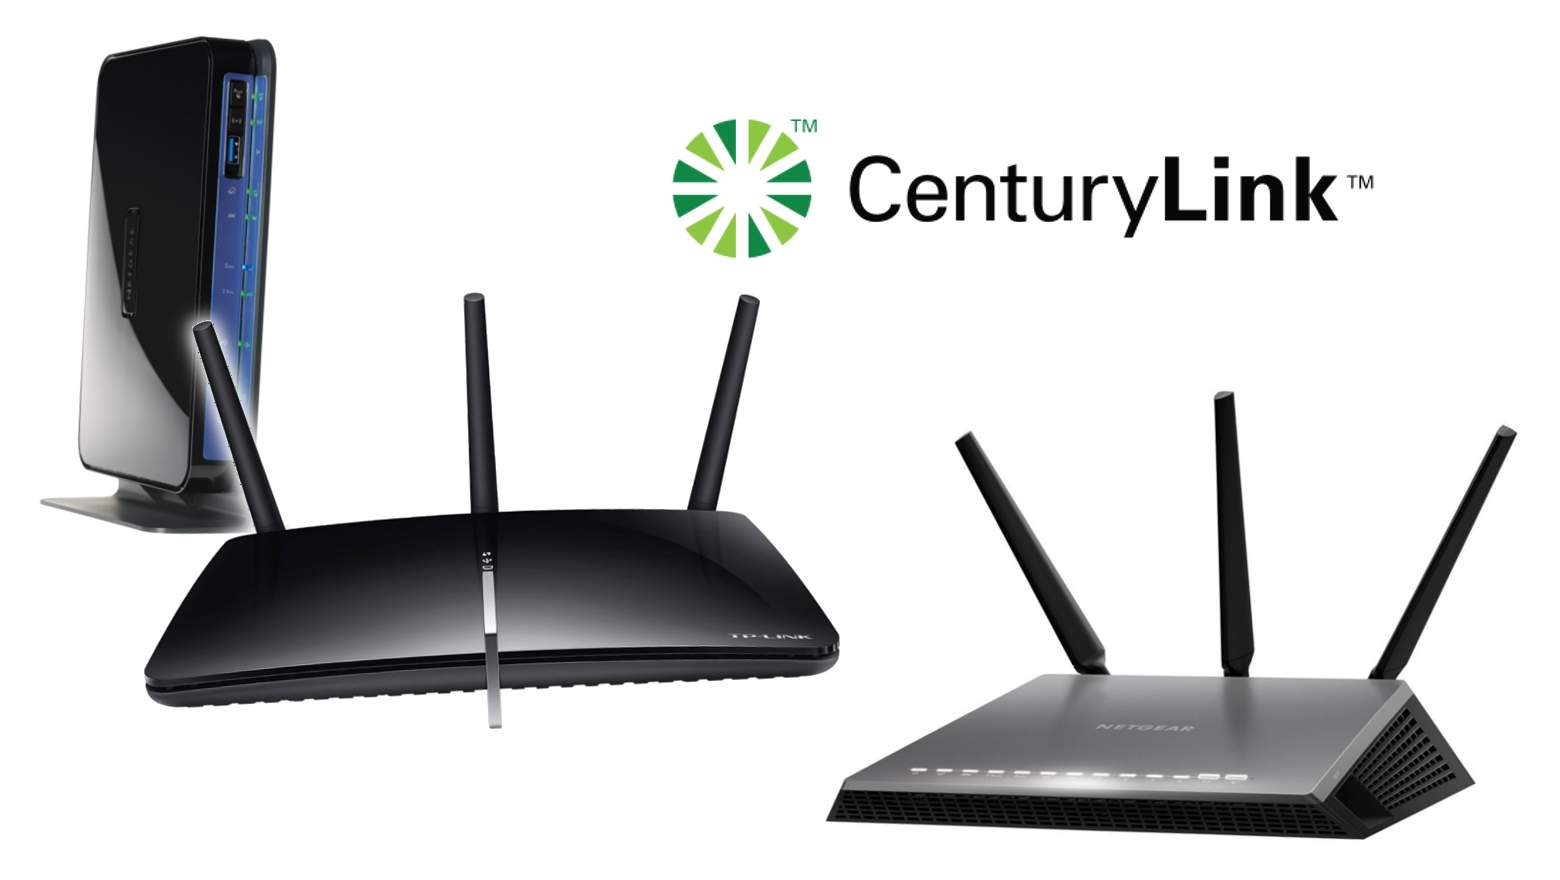 Routing Your Connection: 10 of the Best Routers for Your Online Needs